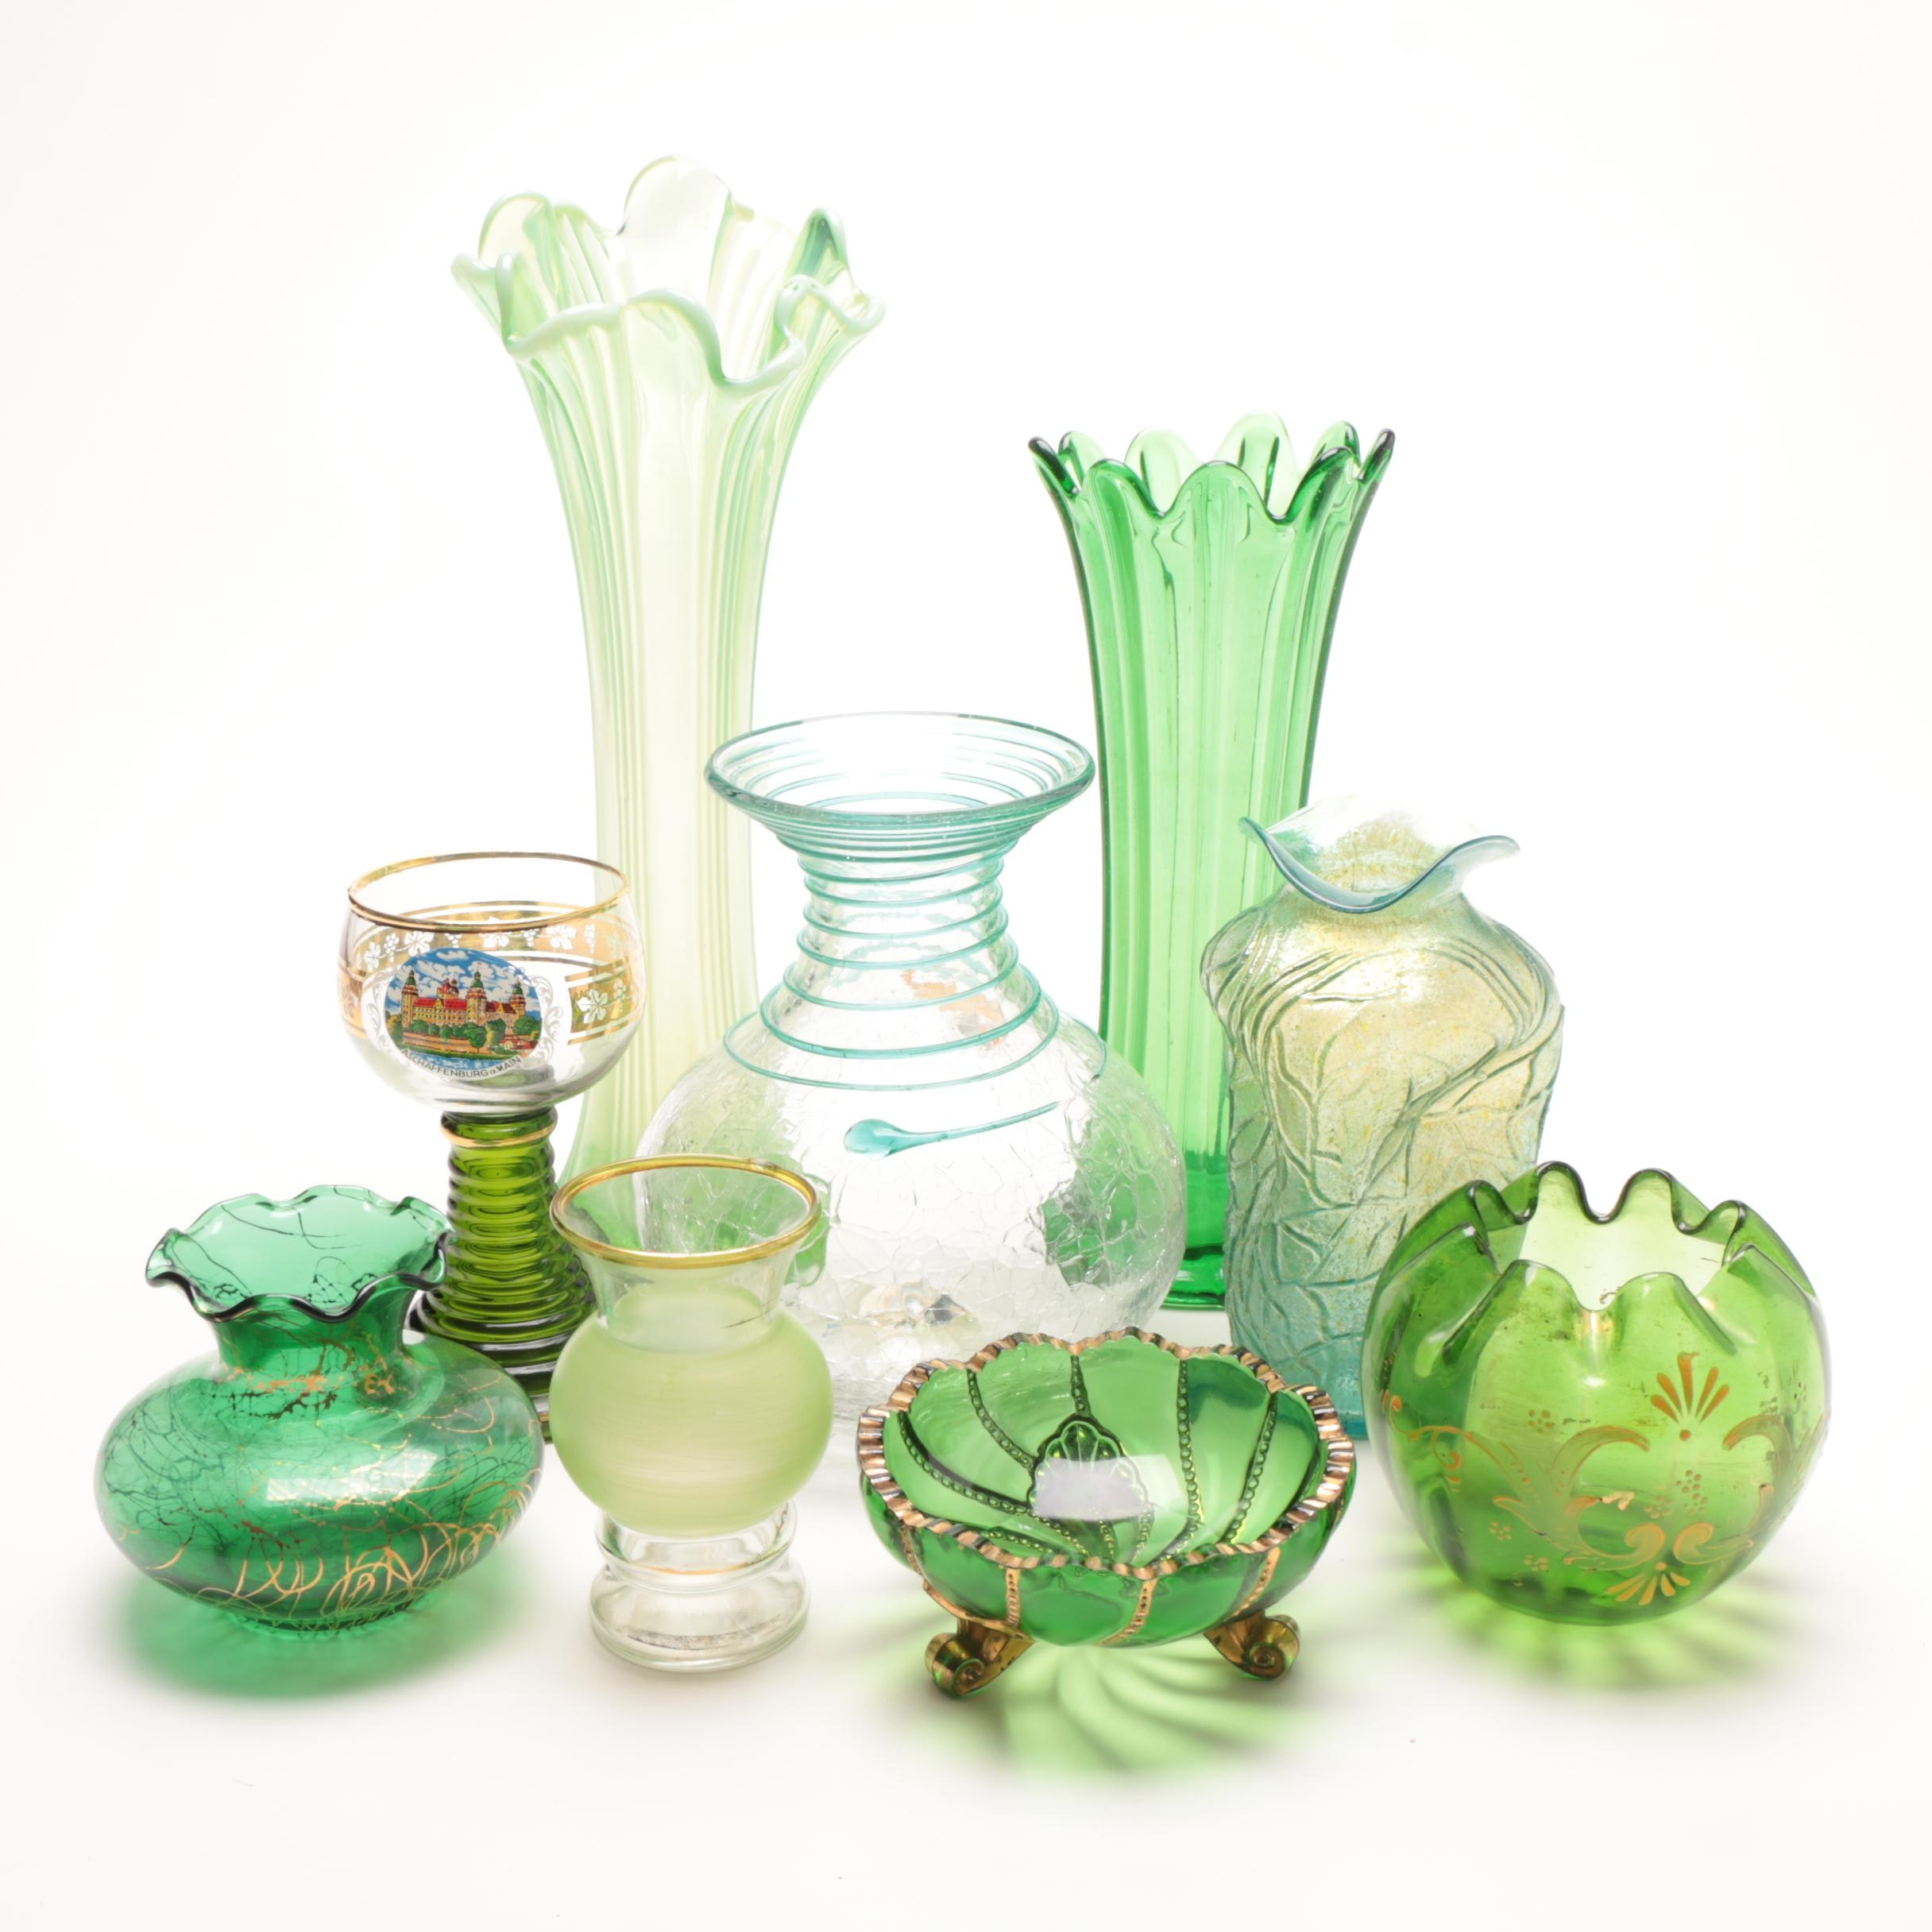 Vintage Assorted Green Decorative Vases Featuring Art Glass by Blenko